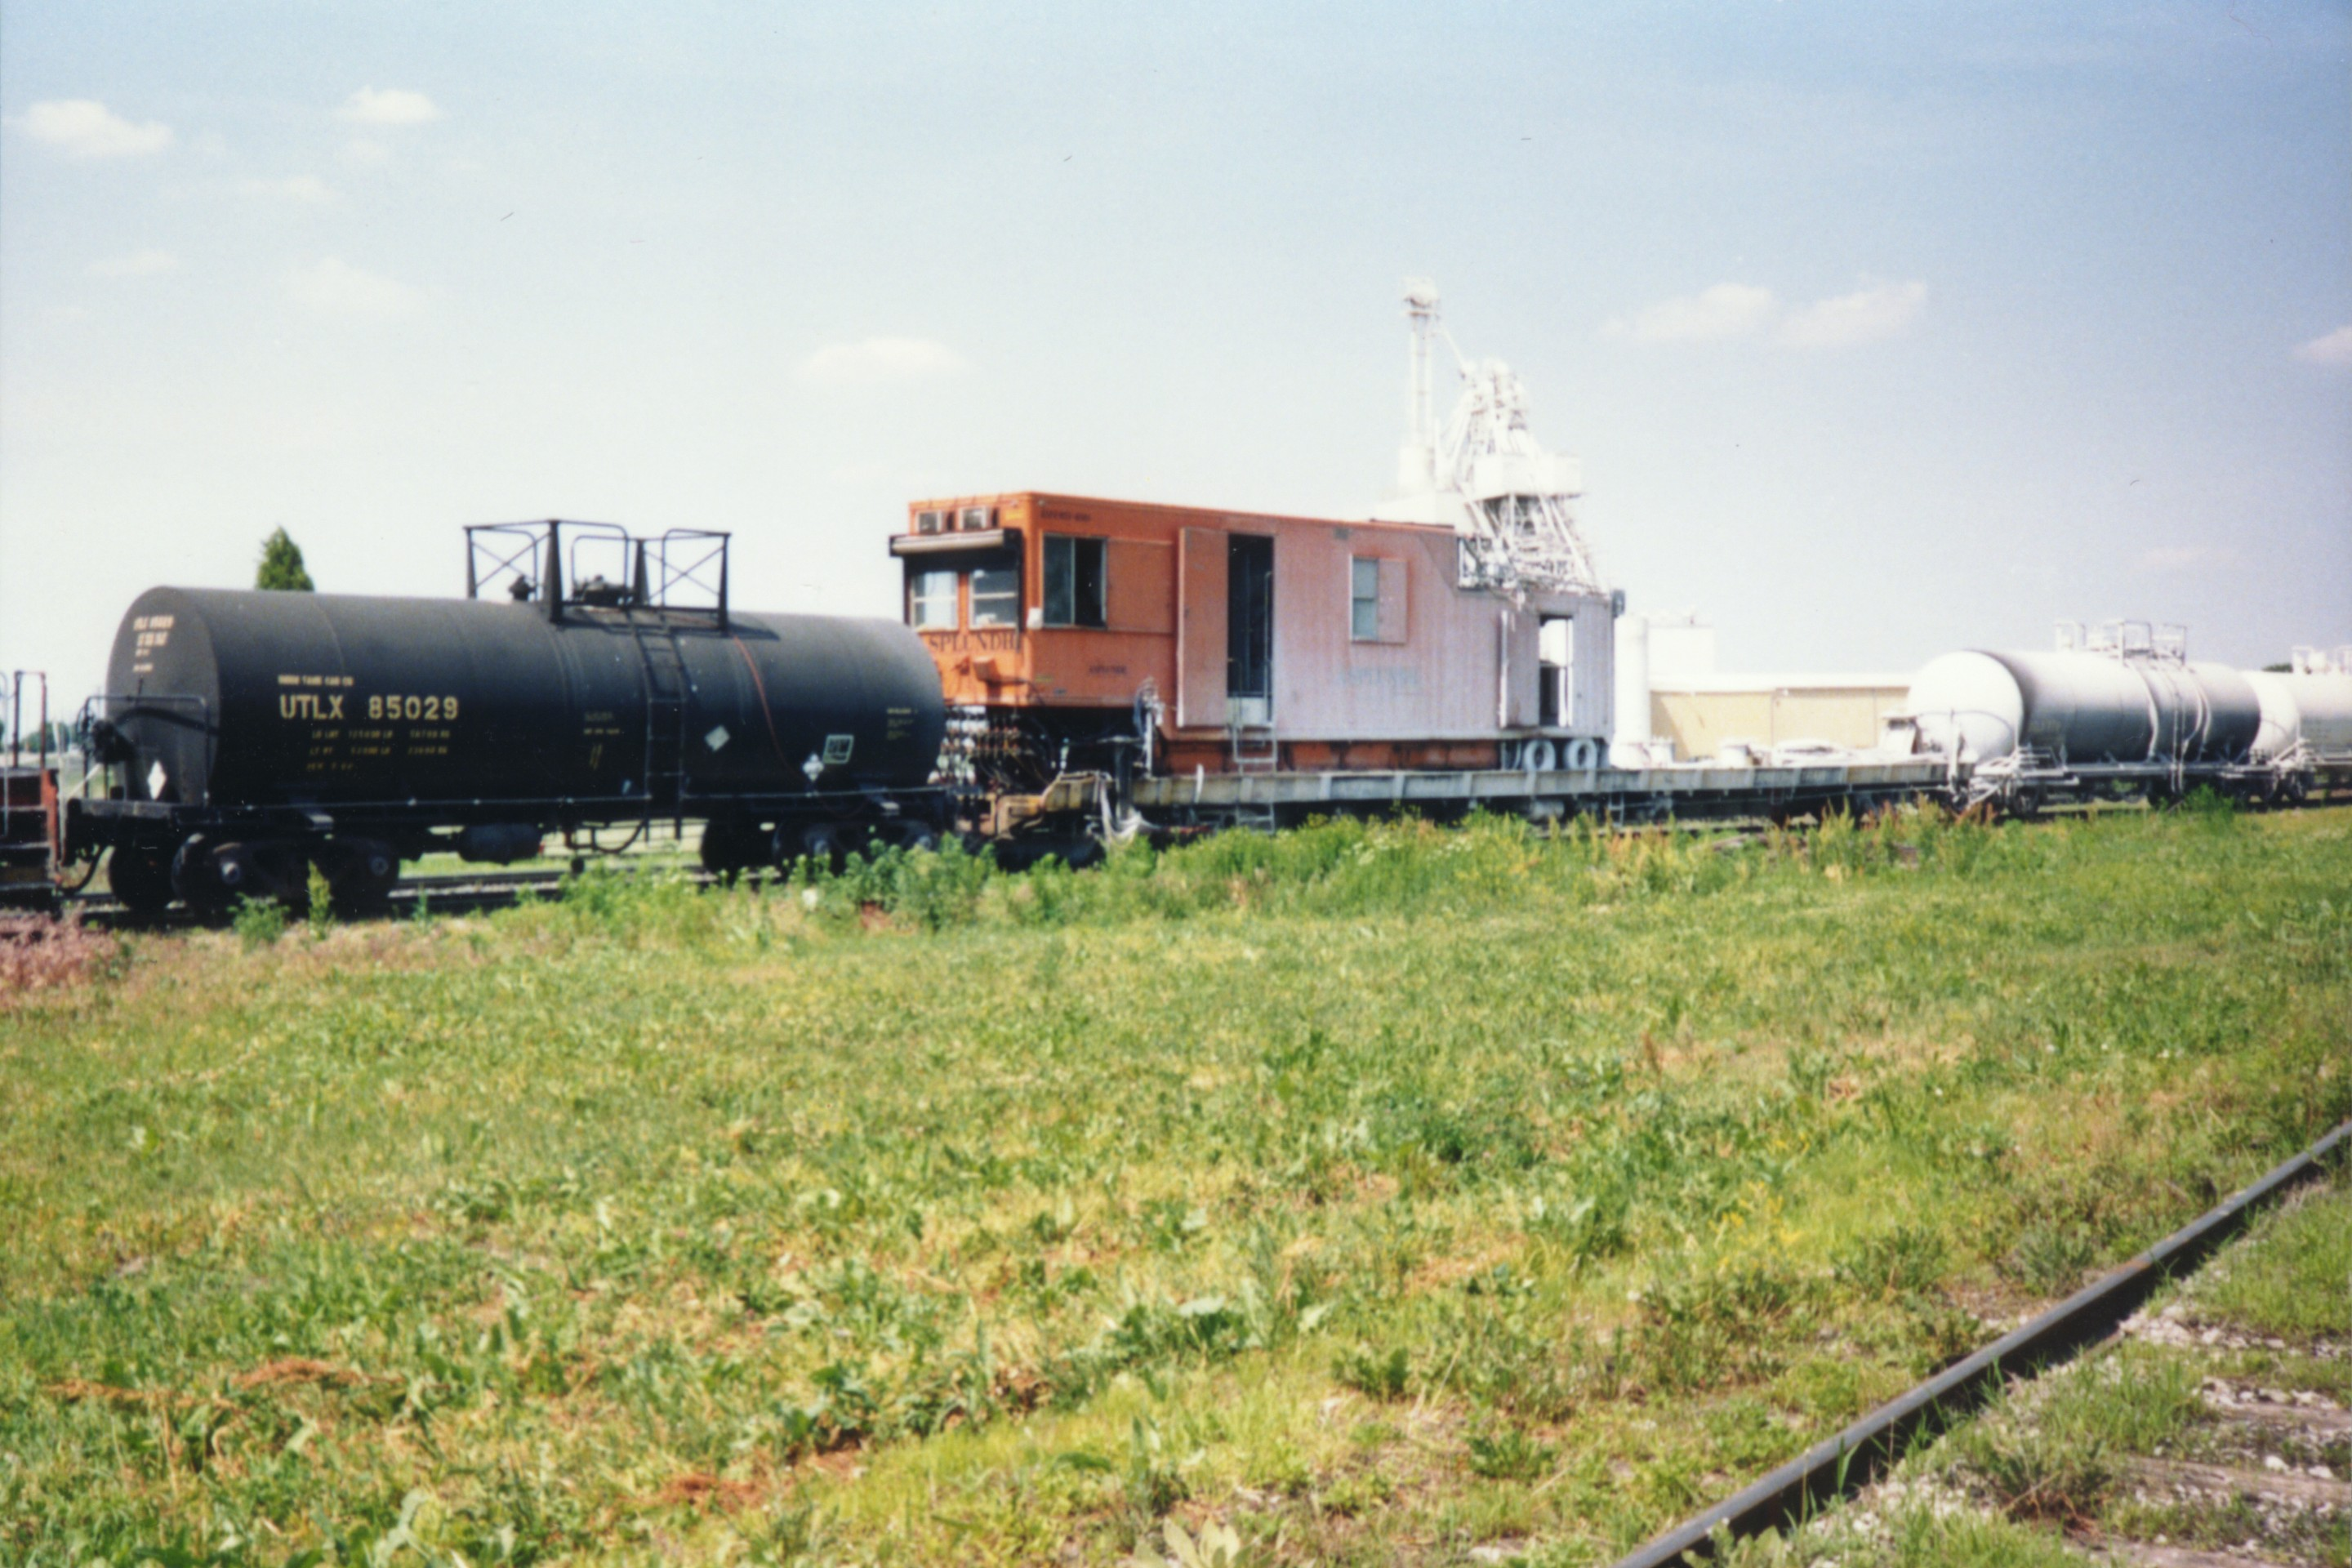 ASPX-0574501-altoona ia-[jun-1992]-001